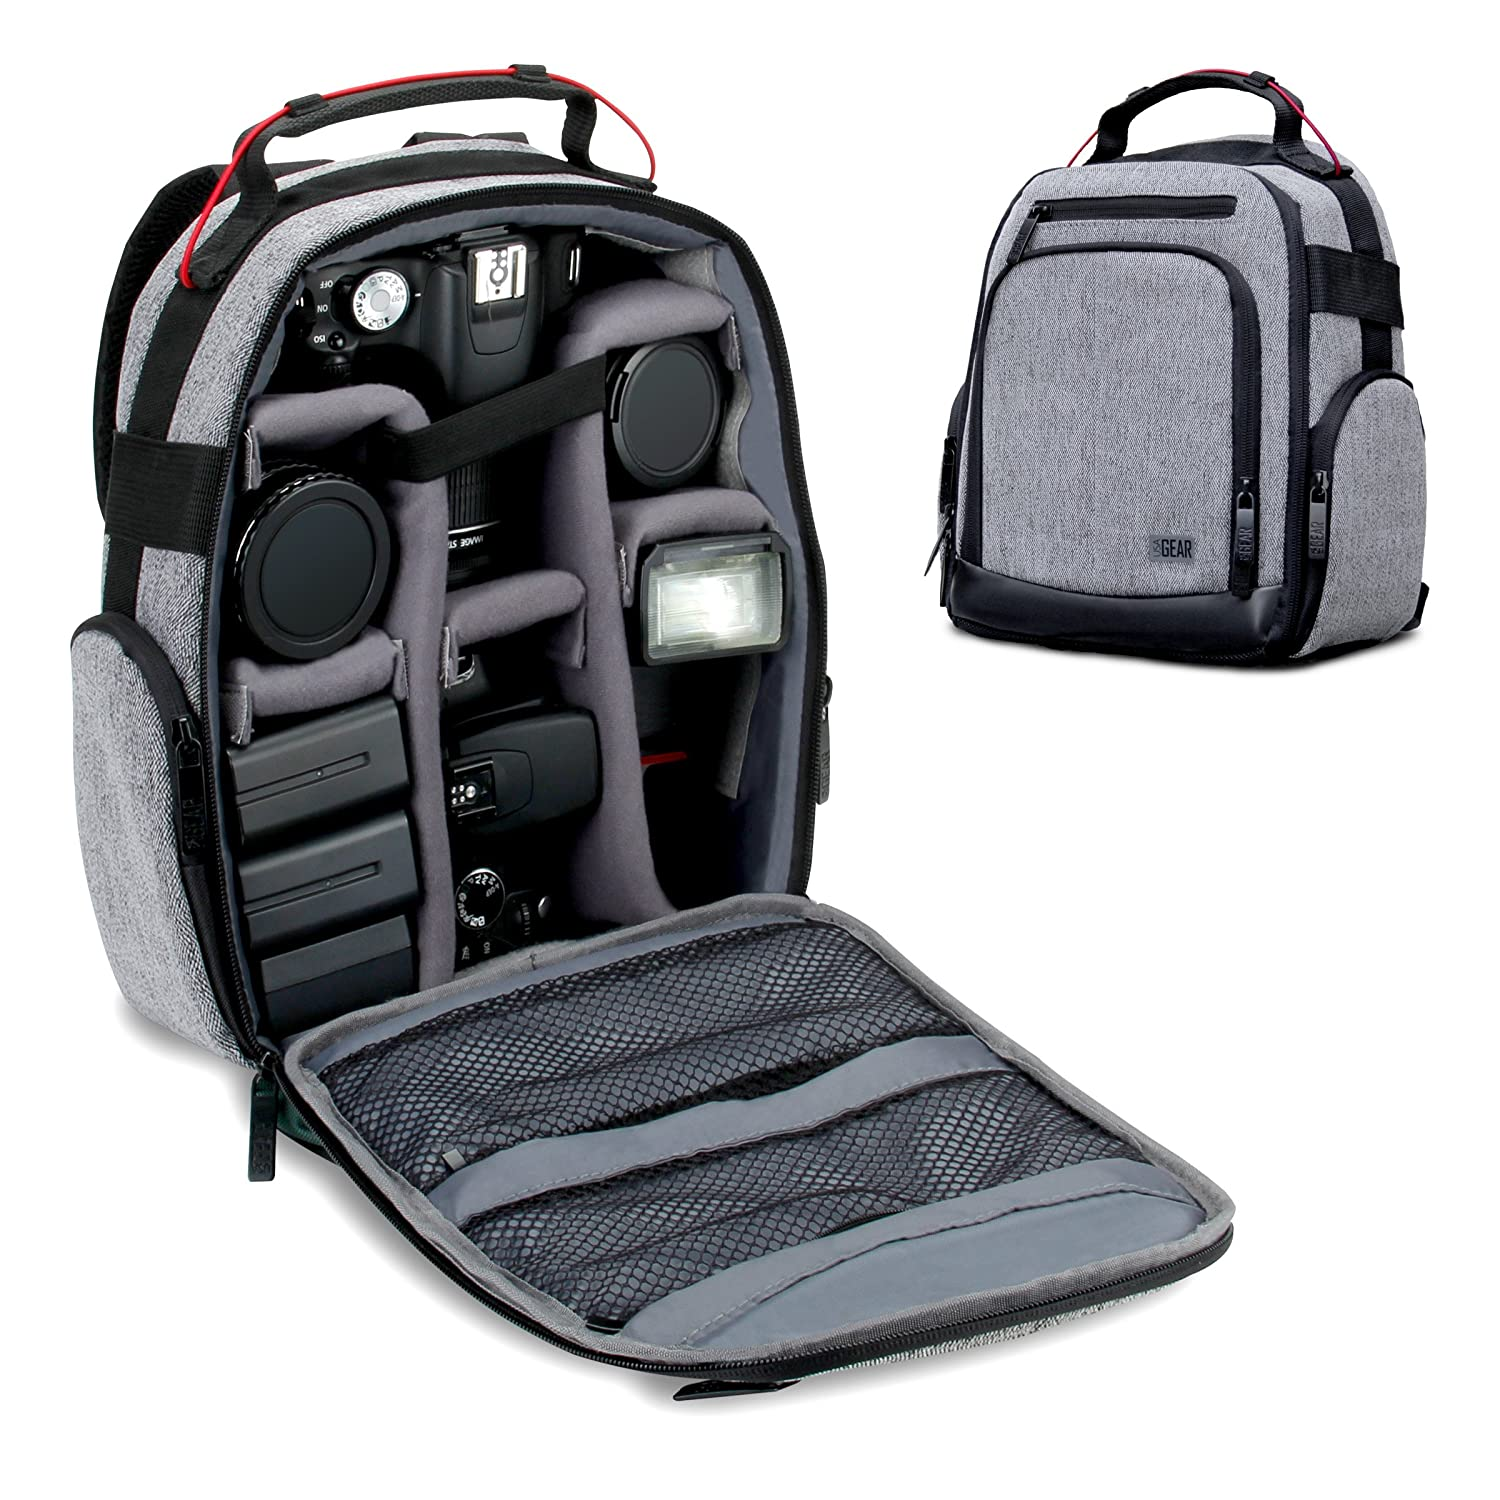 USA GEAR Portable Camera Backpack for DSLR/SLR (Gray) w/Customizable Accessory Dividers, Weather Resistant Bottom, Comfortable Back Support - Compatible w/Canon EOS T5/T6 - Nikon D3300/D3400 & More